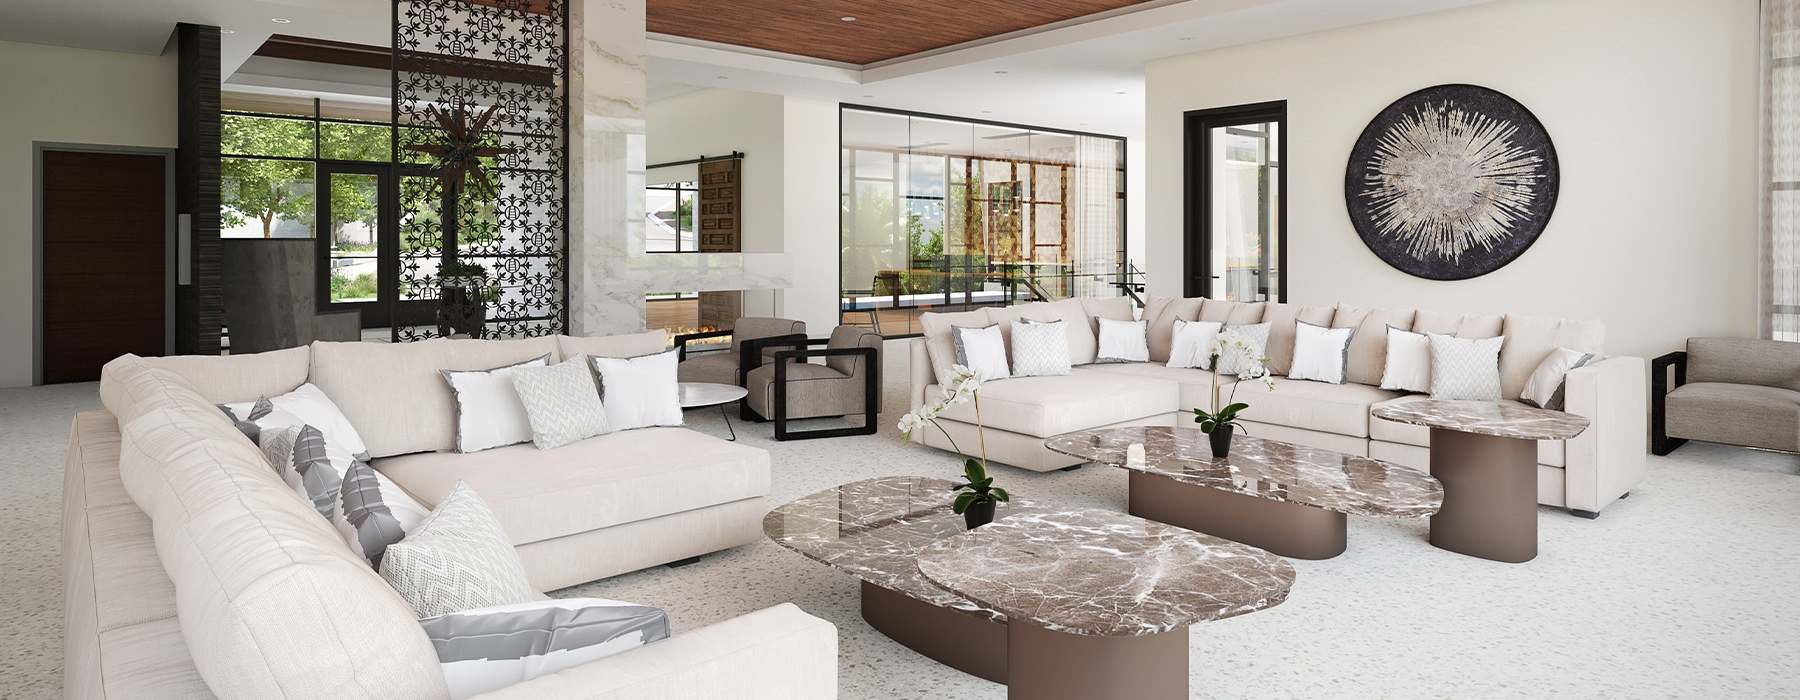 Spacious and well lit clubhouse with an open floor plan